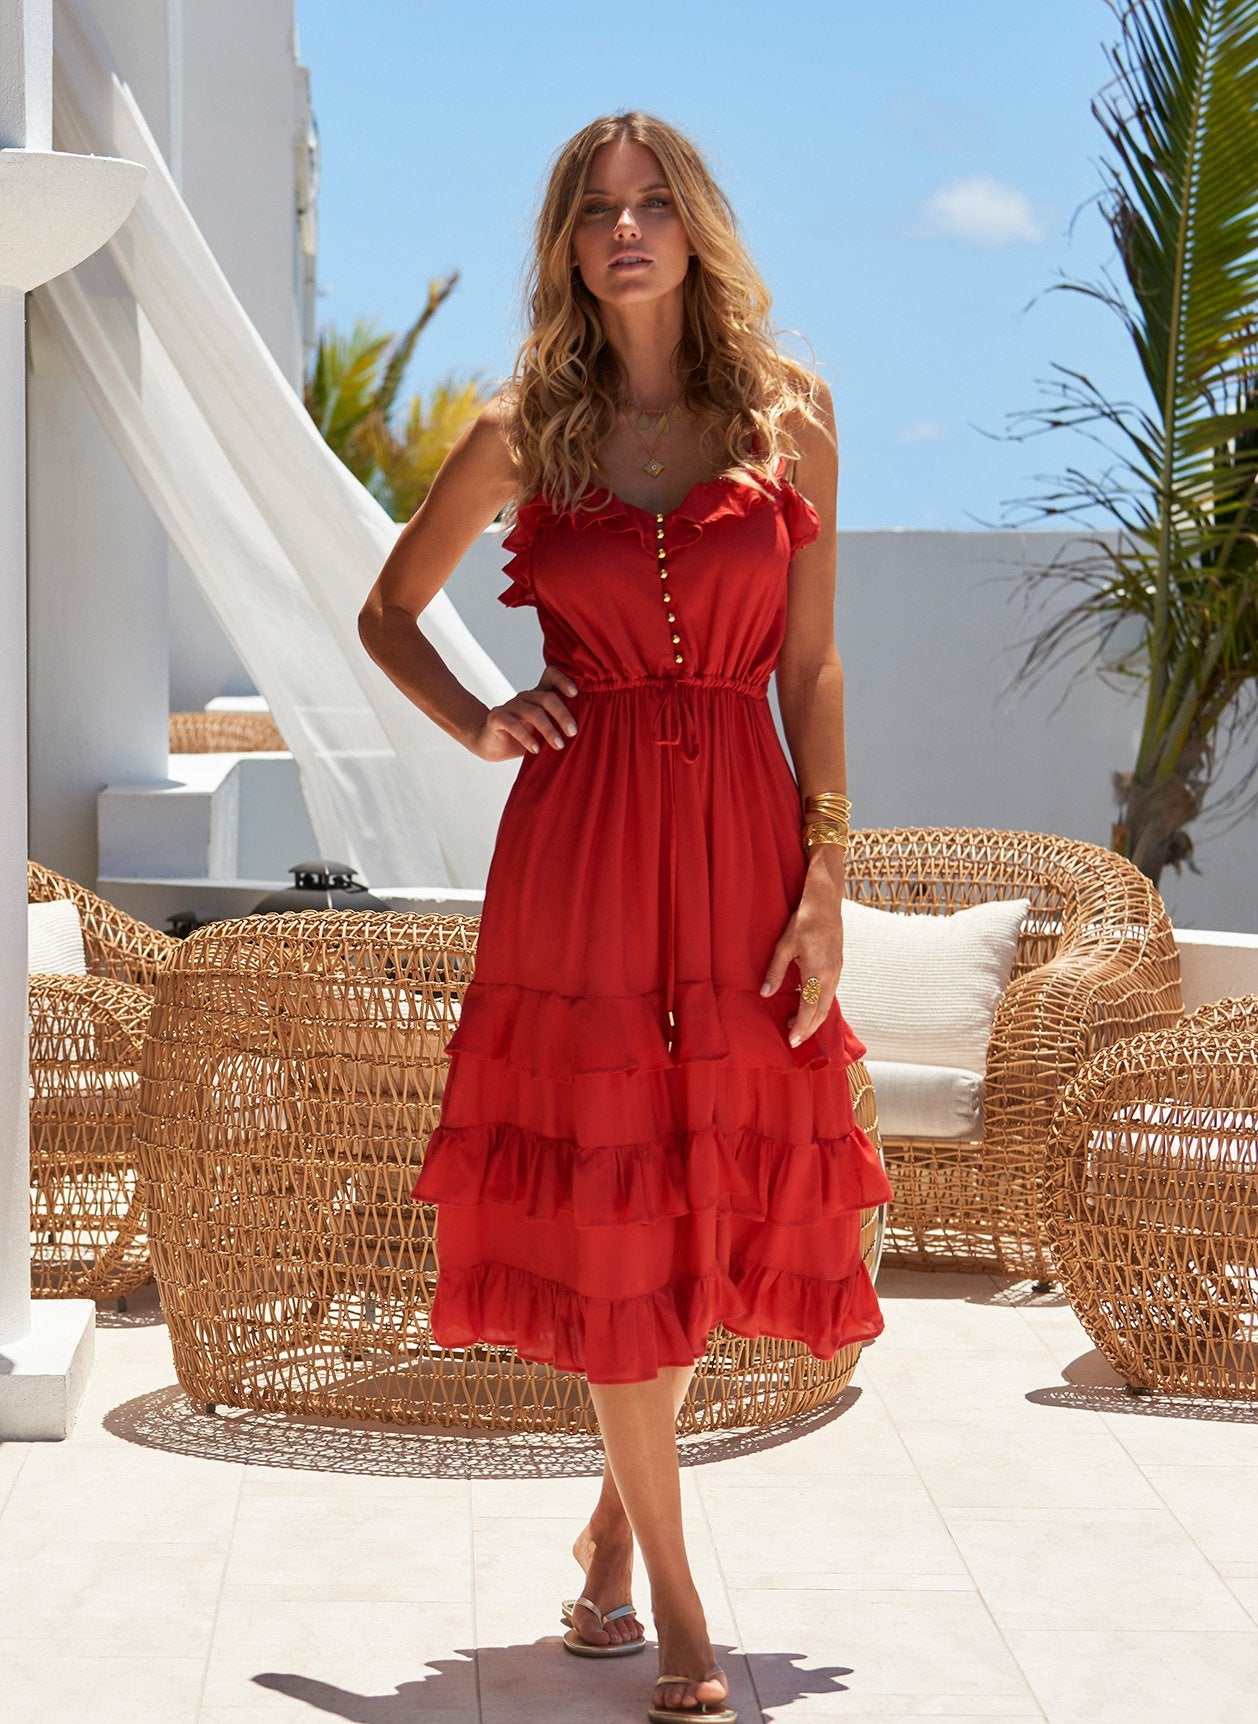 Bethan Red Midi Dress